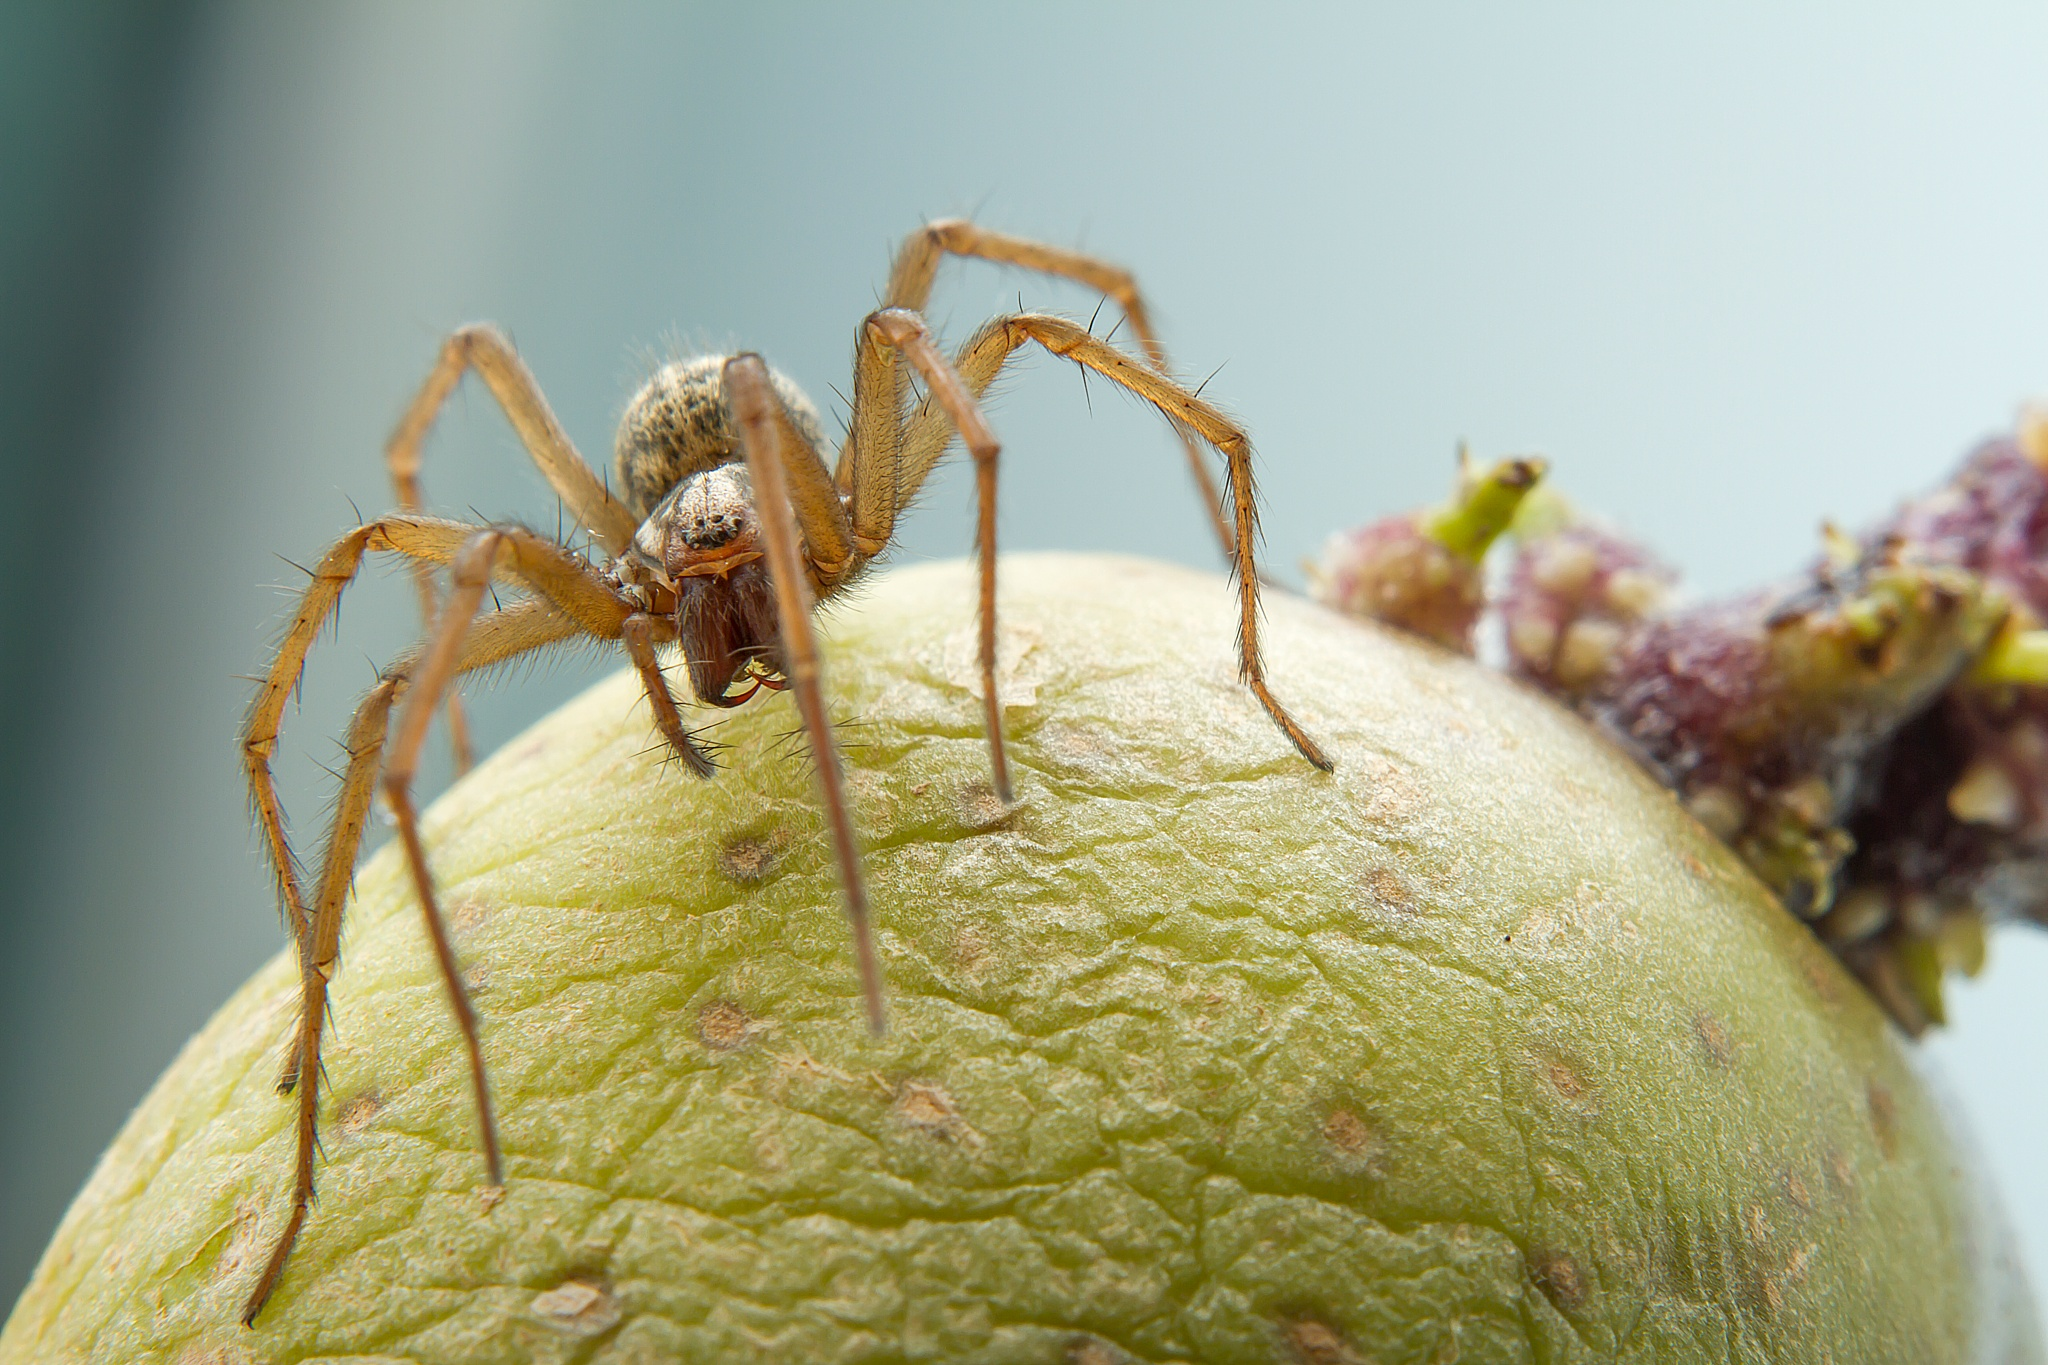 spider on potato by Renaat